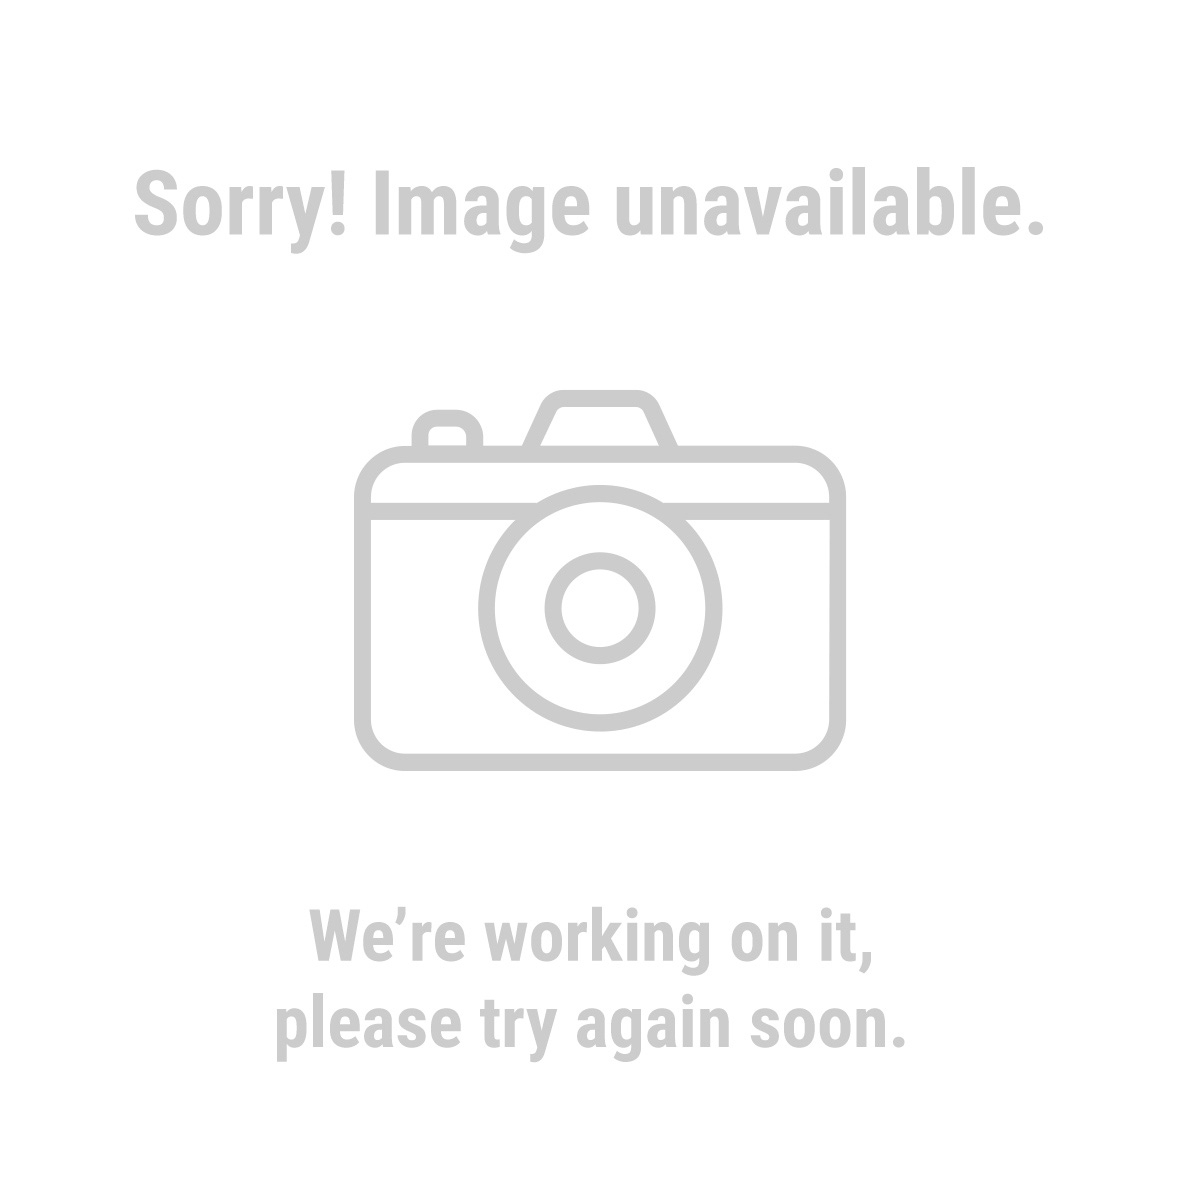 Pittsburgh® 31675 6 Piece Precision Pliers Set